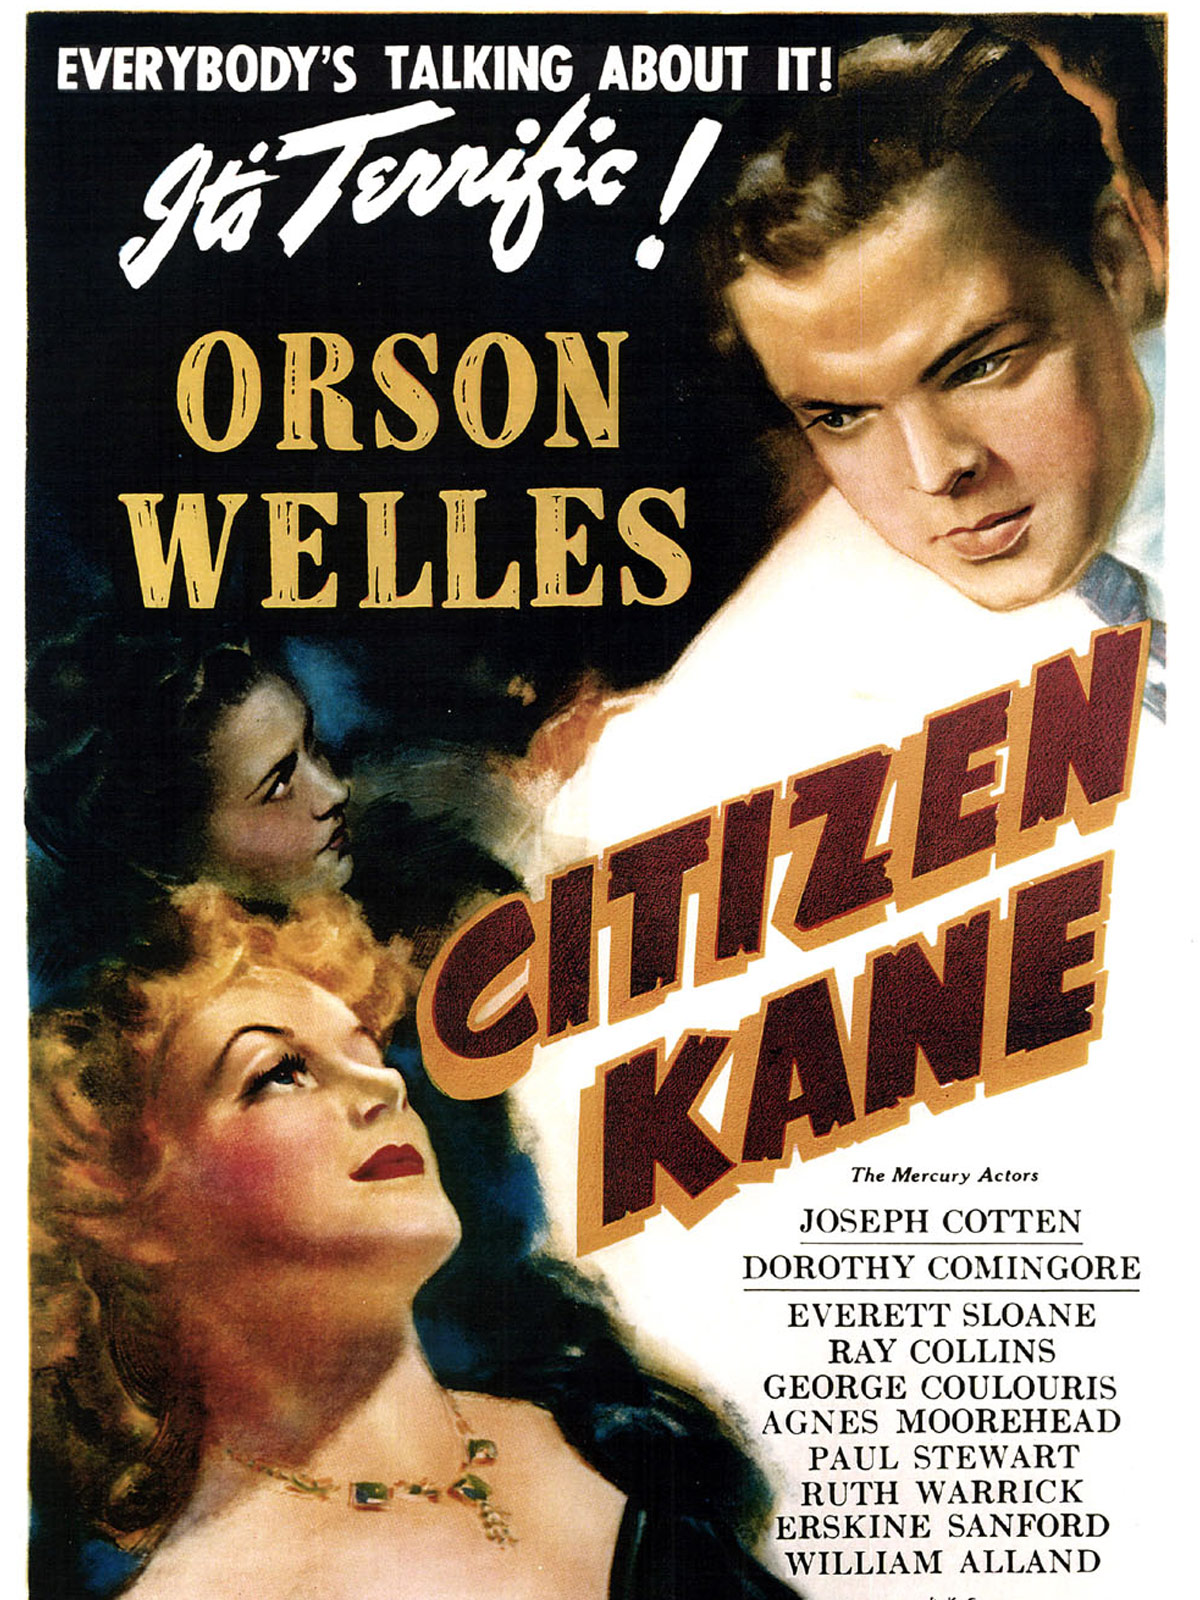 an introduction to citizen kane who was charles foster kane Citizen kane revolutionised film-making, and the question of its authorship an introduction to meaning and purpose incorporating parodic newsreel footage and a series of flashbacks depicting various characters' memories of charles foster kane, introducing subtle questions about.